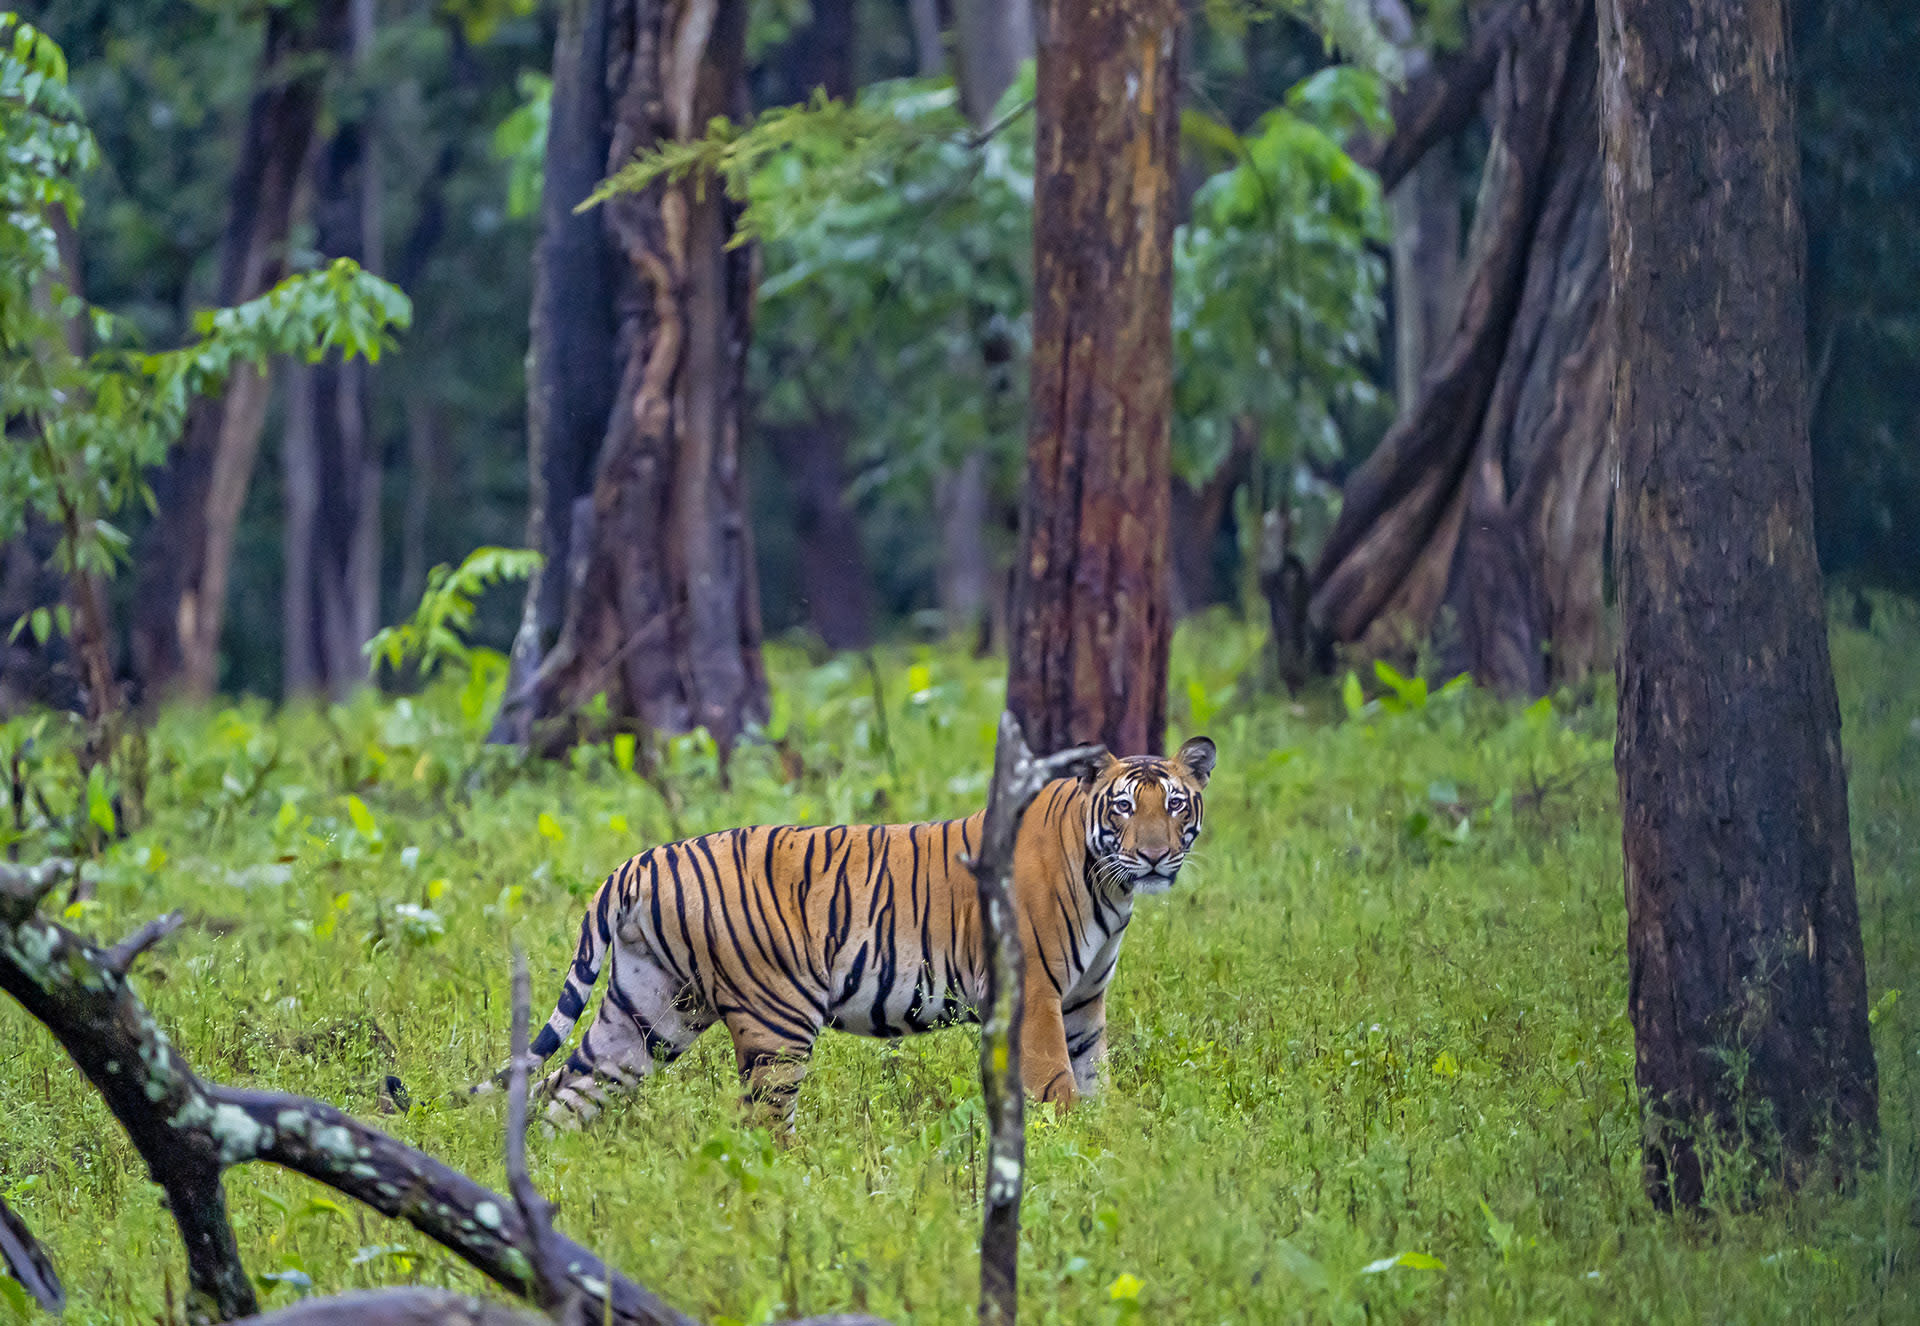 Estimates say that Nagarhole has about 110 adult tigers. Yet, spotting the big cat is always a matter of chance.